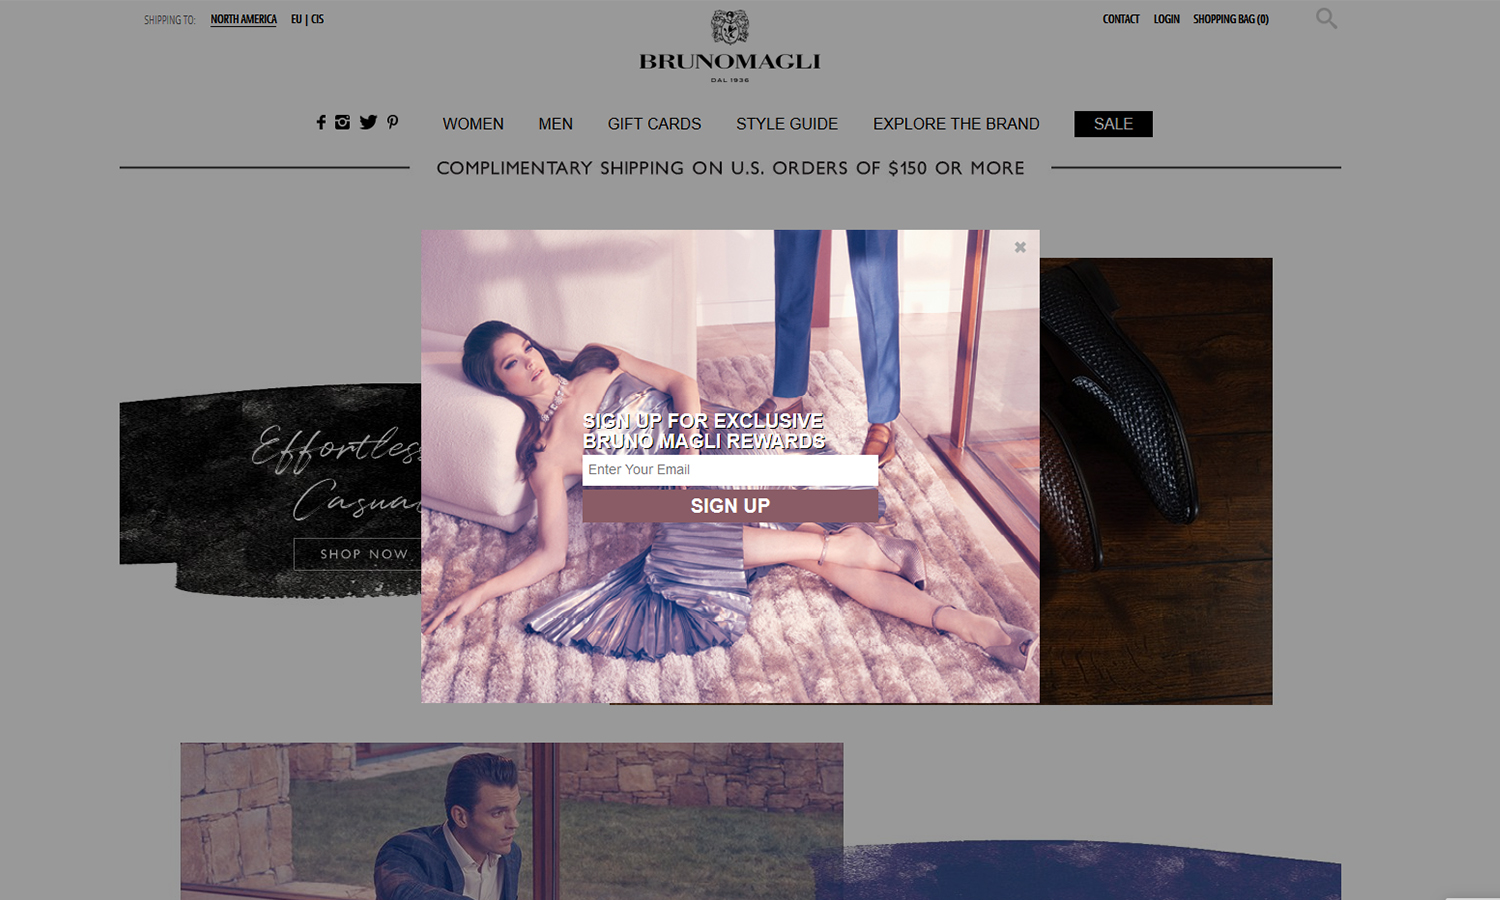 an opt-in pop-up on Bruno Magli's online store